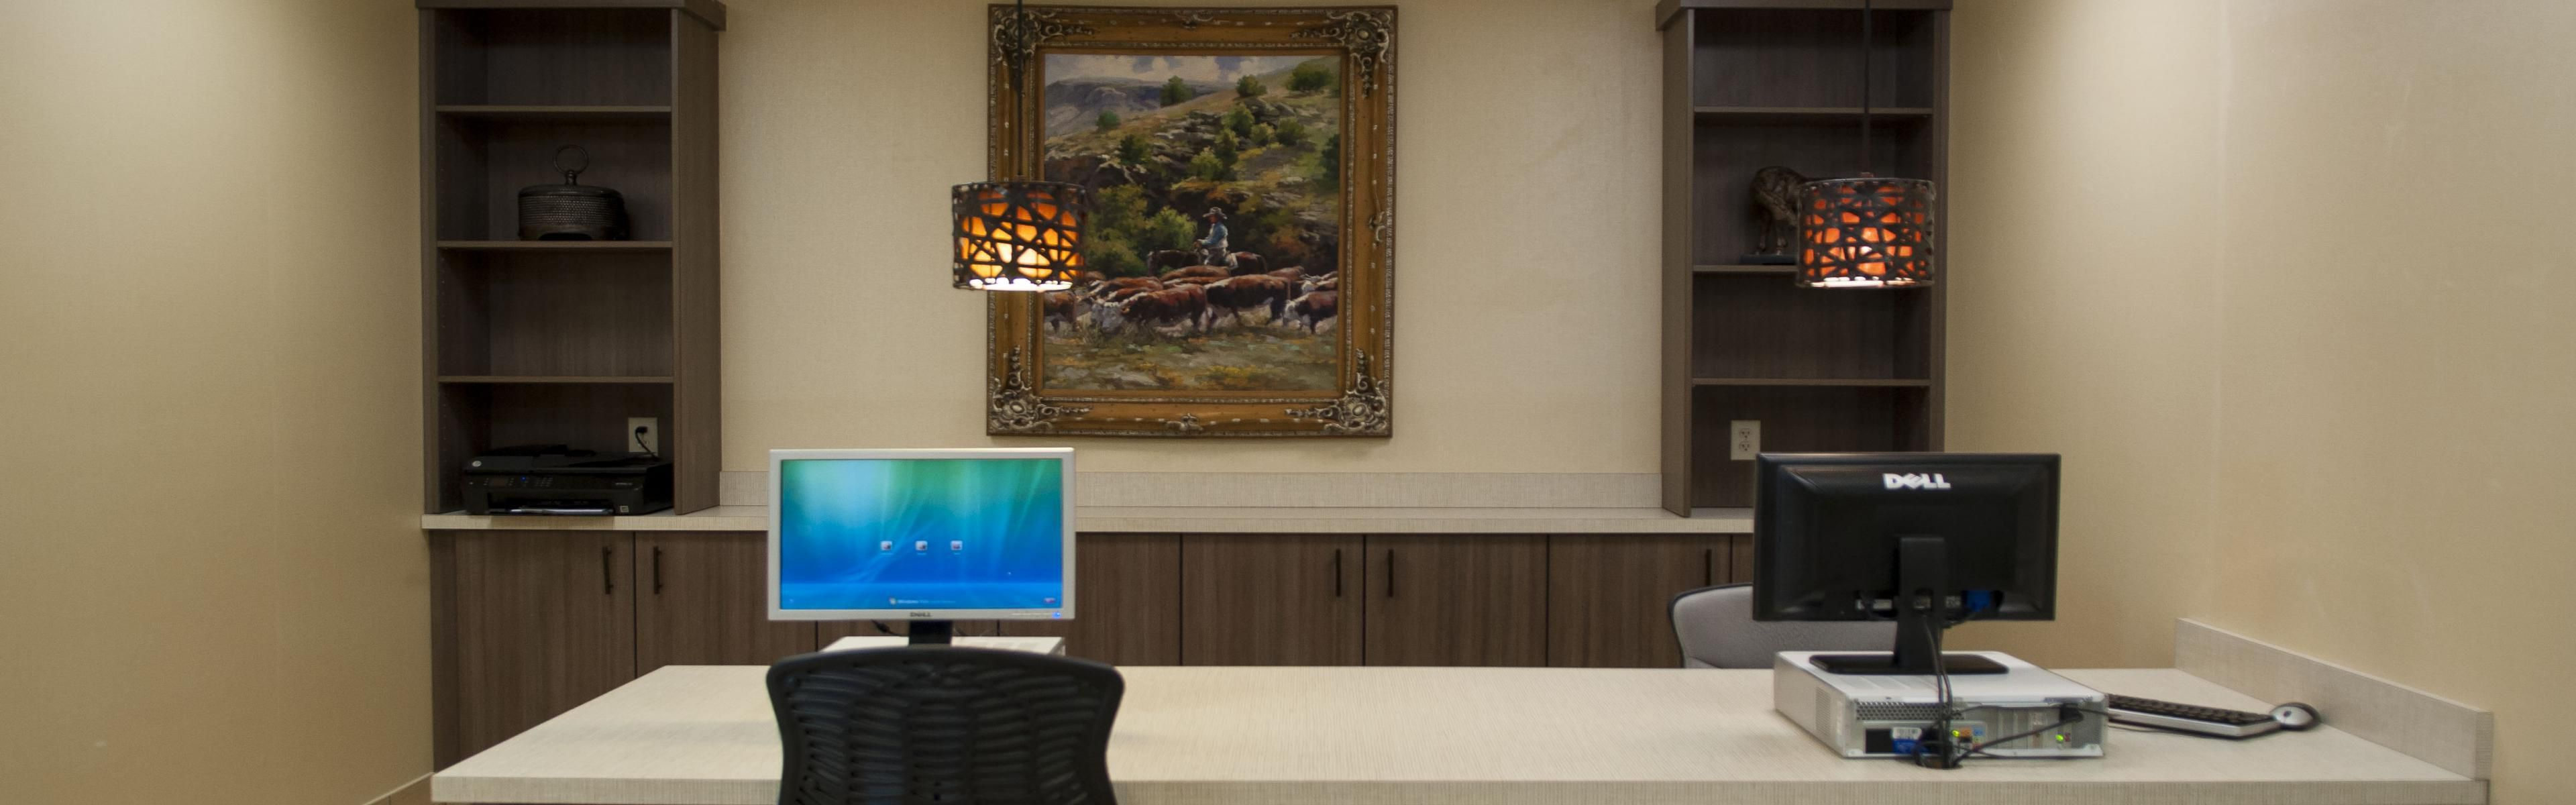 Holiday Inn Spearfish-Convention Center image 2